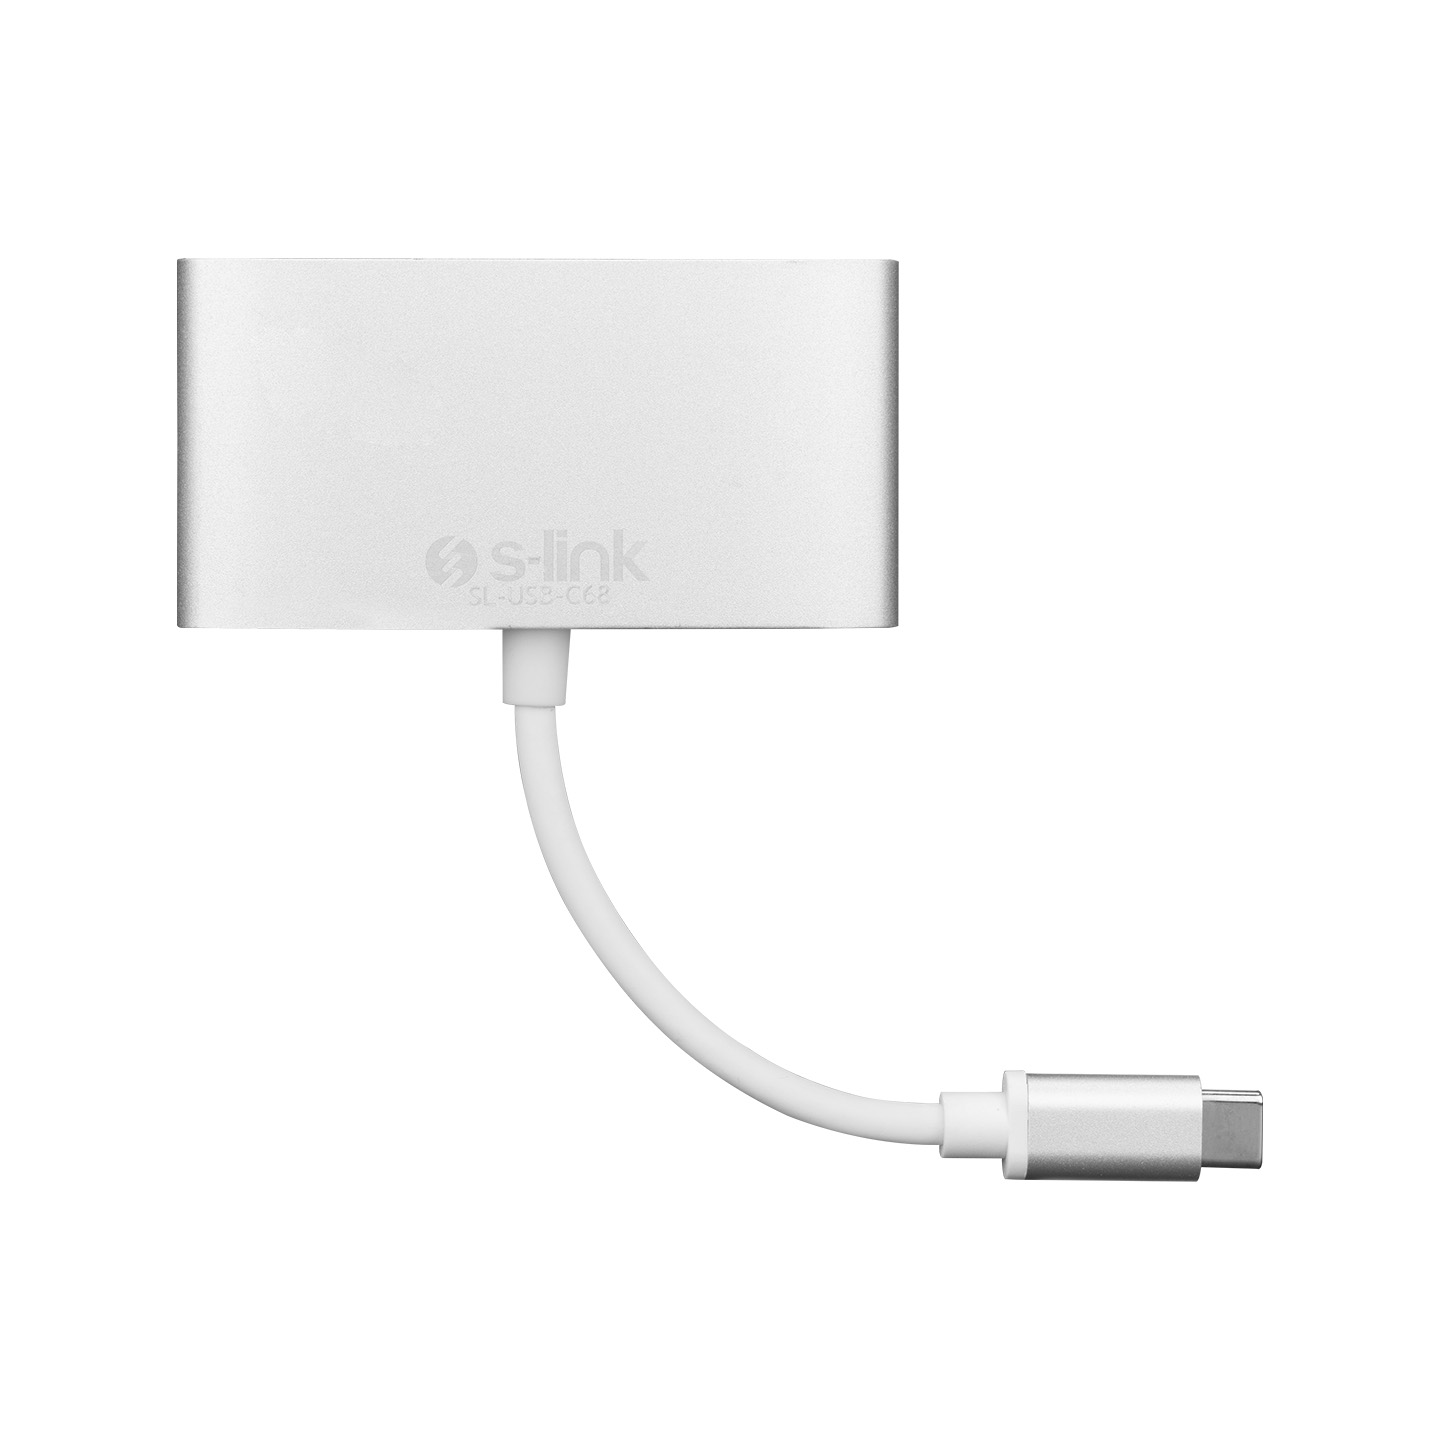 S-link SL-USB-C68 Type-C to HDMI+usb3.0+pd Kablo